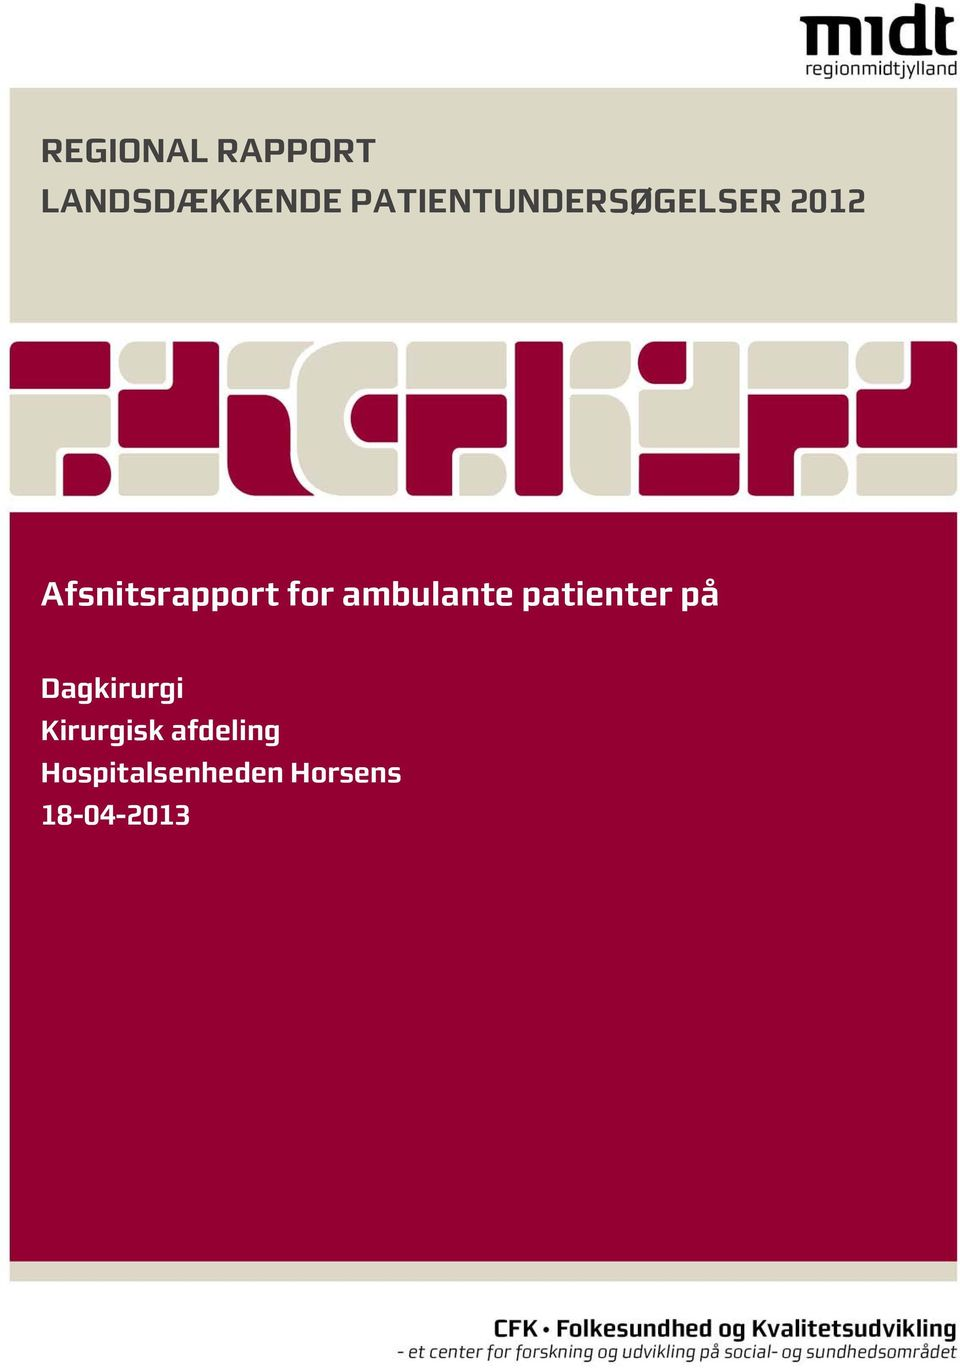 for ambulante patienter på Dagkirurgi